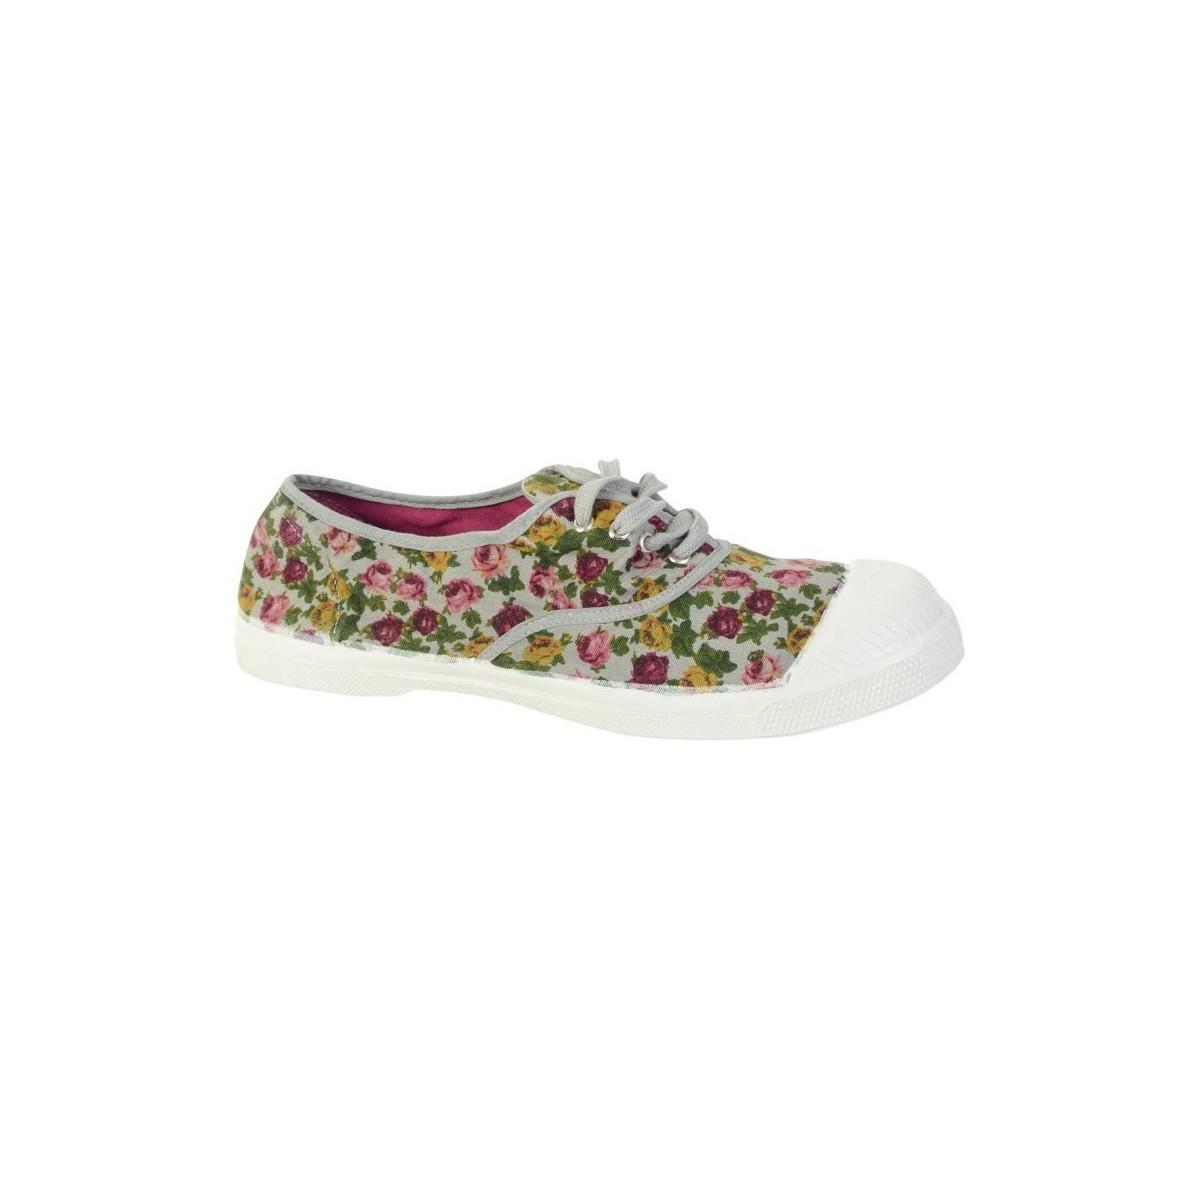 Bensimon Shoes Fleurs 0805 Gris Perle Women's Shoes (trainers) In Grey in Grey